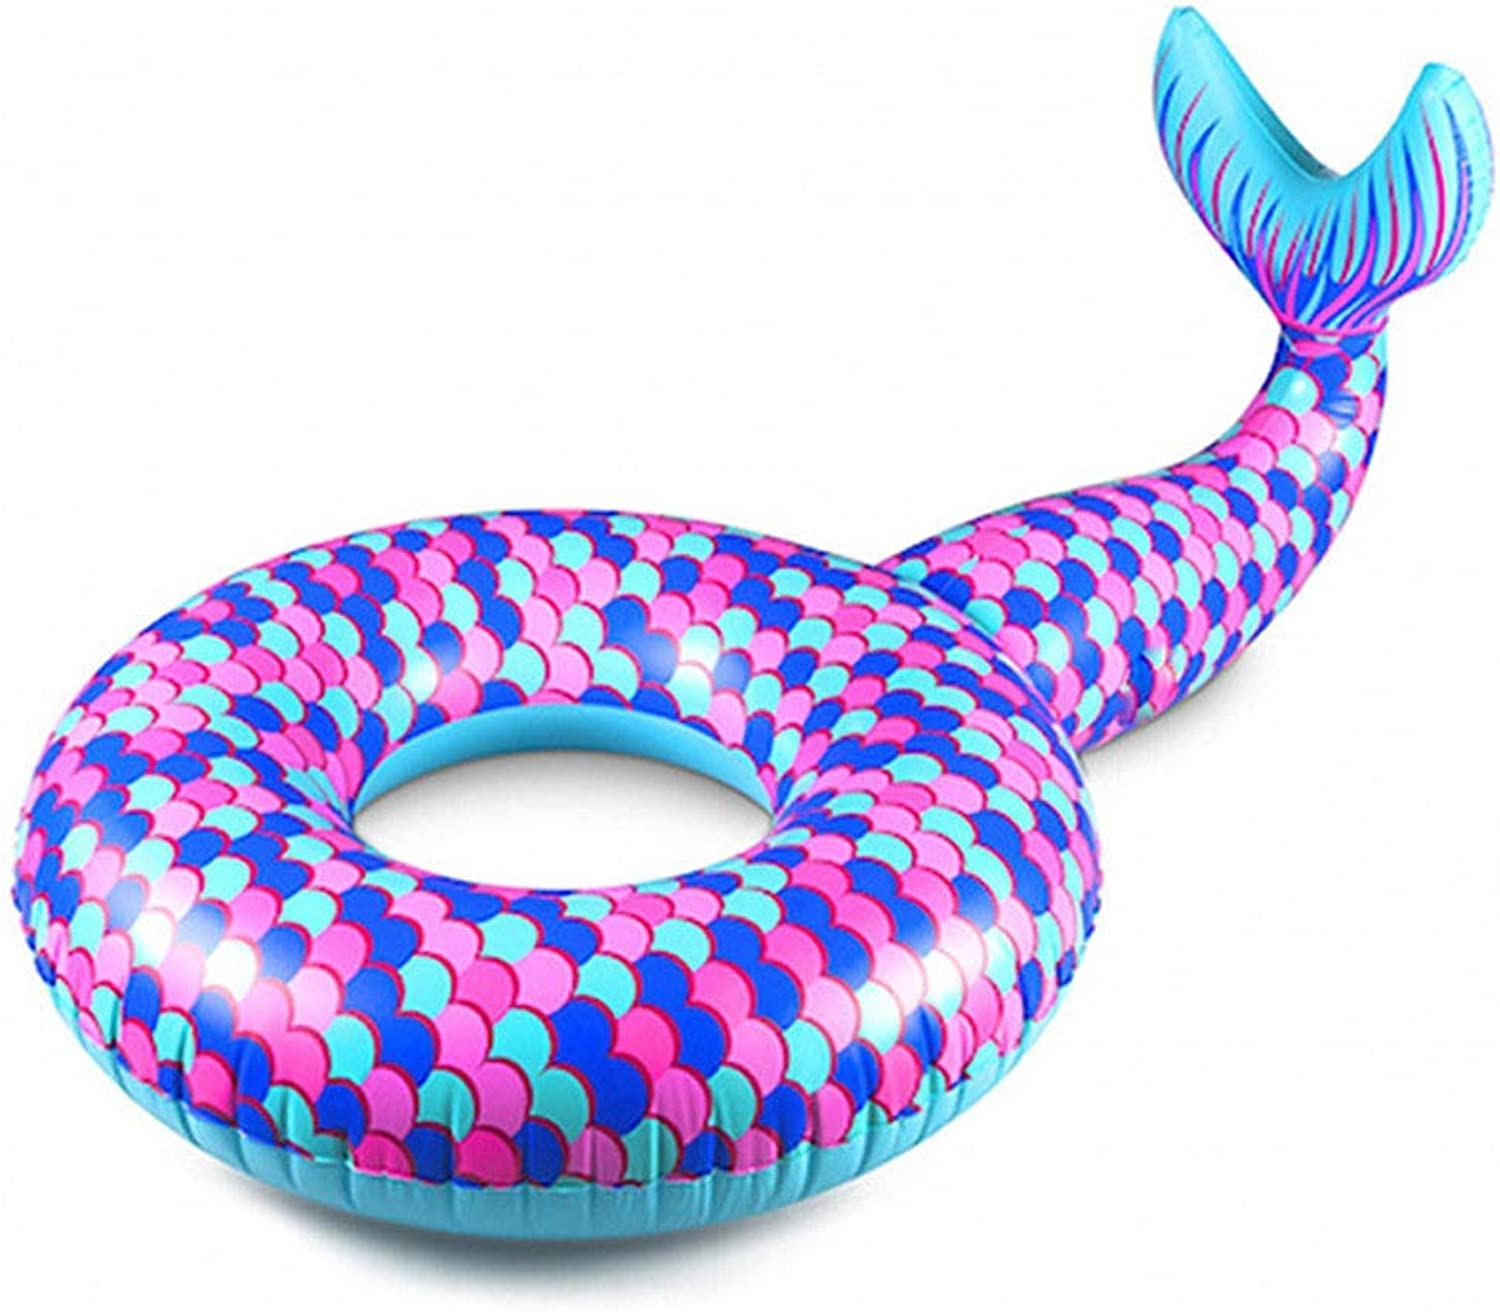 Giant Inflatable Pool Float,Swimming Water Float,Funny Inflatable Vinyl Summer Pool Or Beach Toy,Beach Floaties for Adults and Kids (Mermaid Tail)